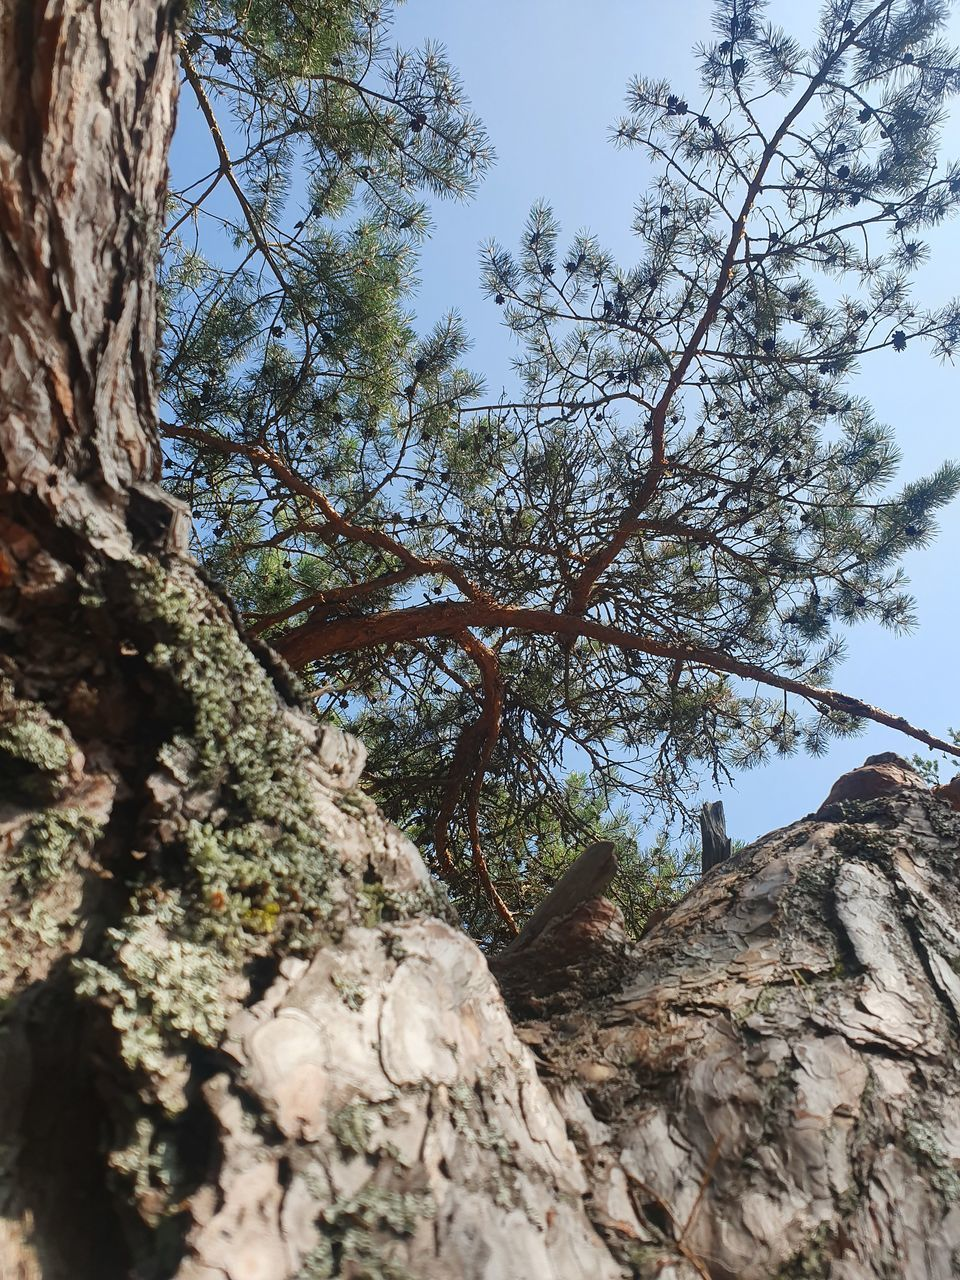 tree, plant, sky, low angle view, nature, branch, tranquility, growth, beauty in nature, rock, day, tree trunk, trunk, no people, land, tranquil scene, rock - object, rock formation, outdoors, scenics - nature